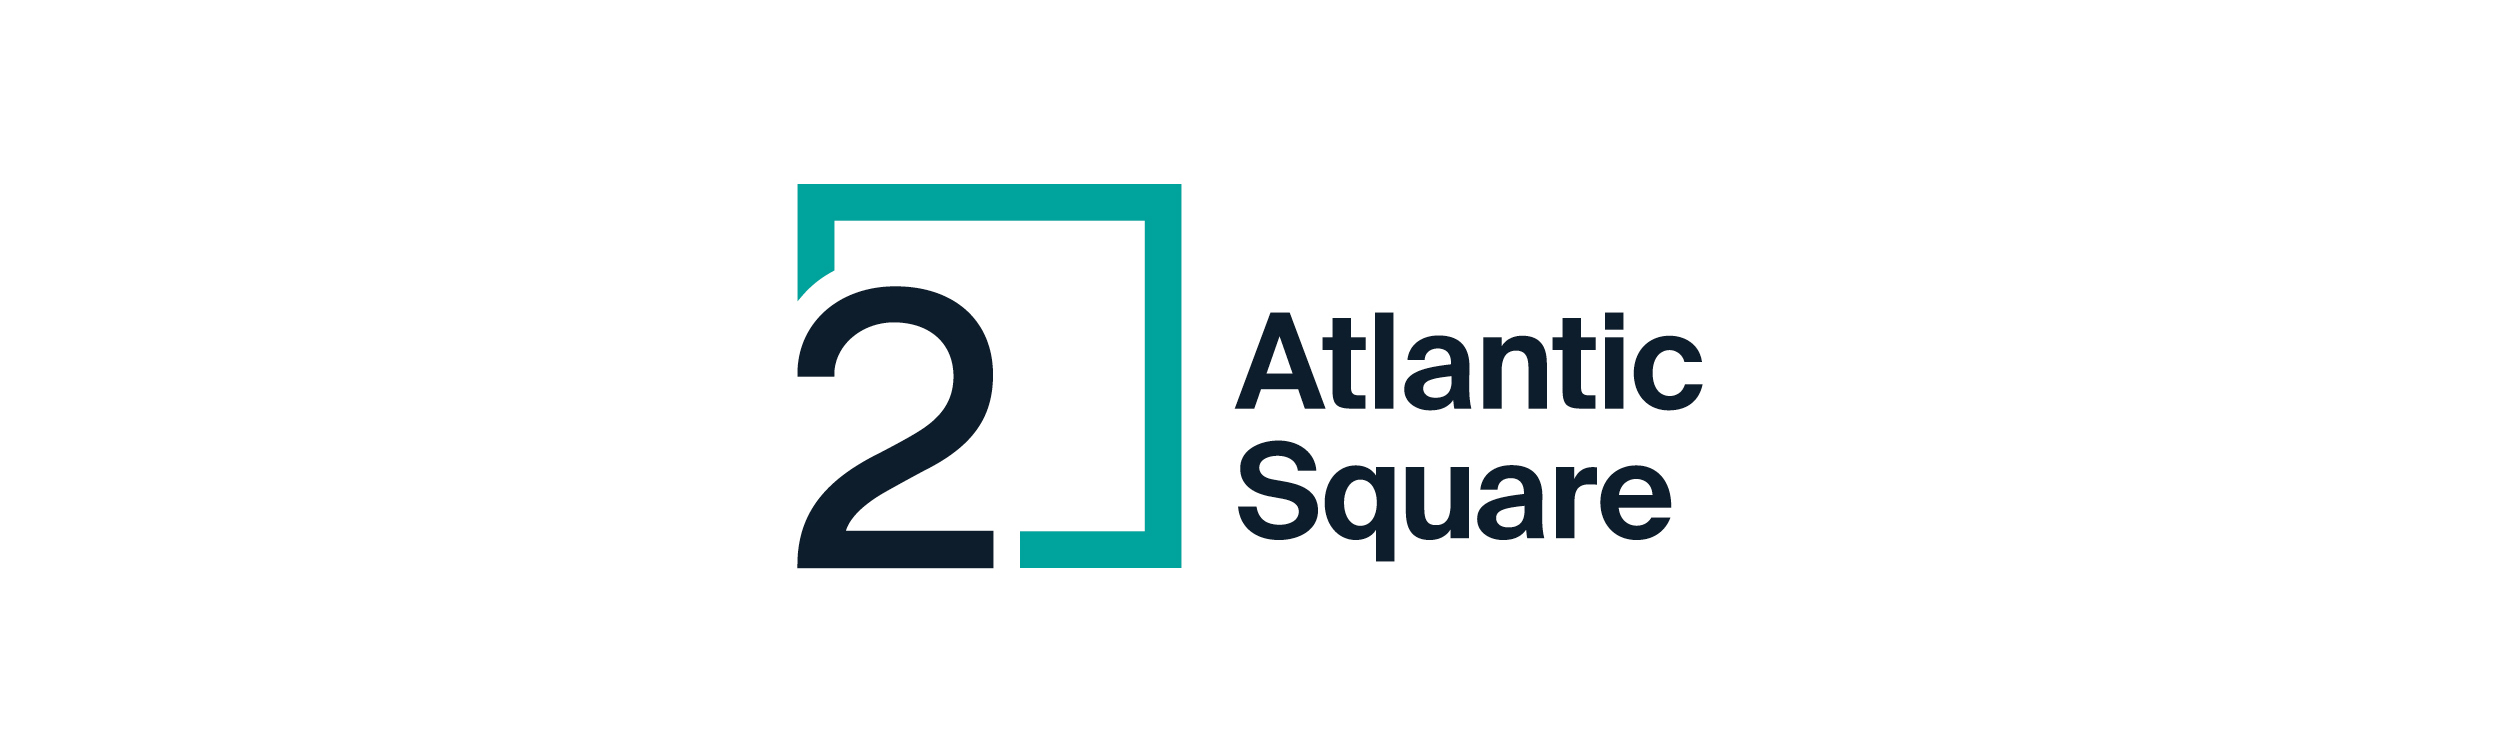 2 Atlantic Square branding